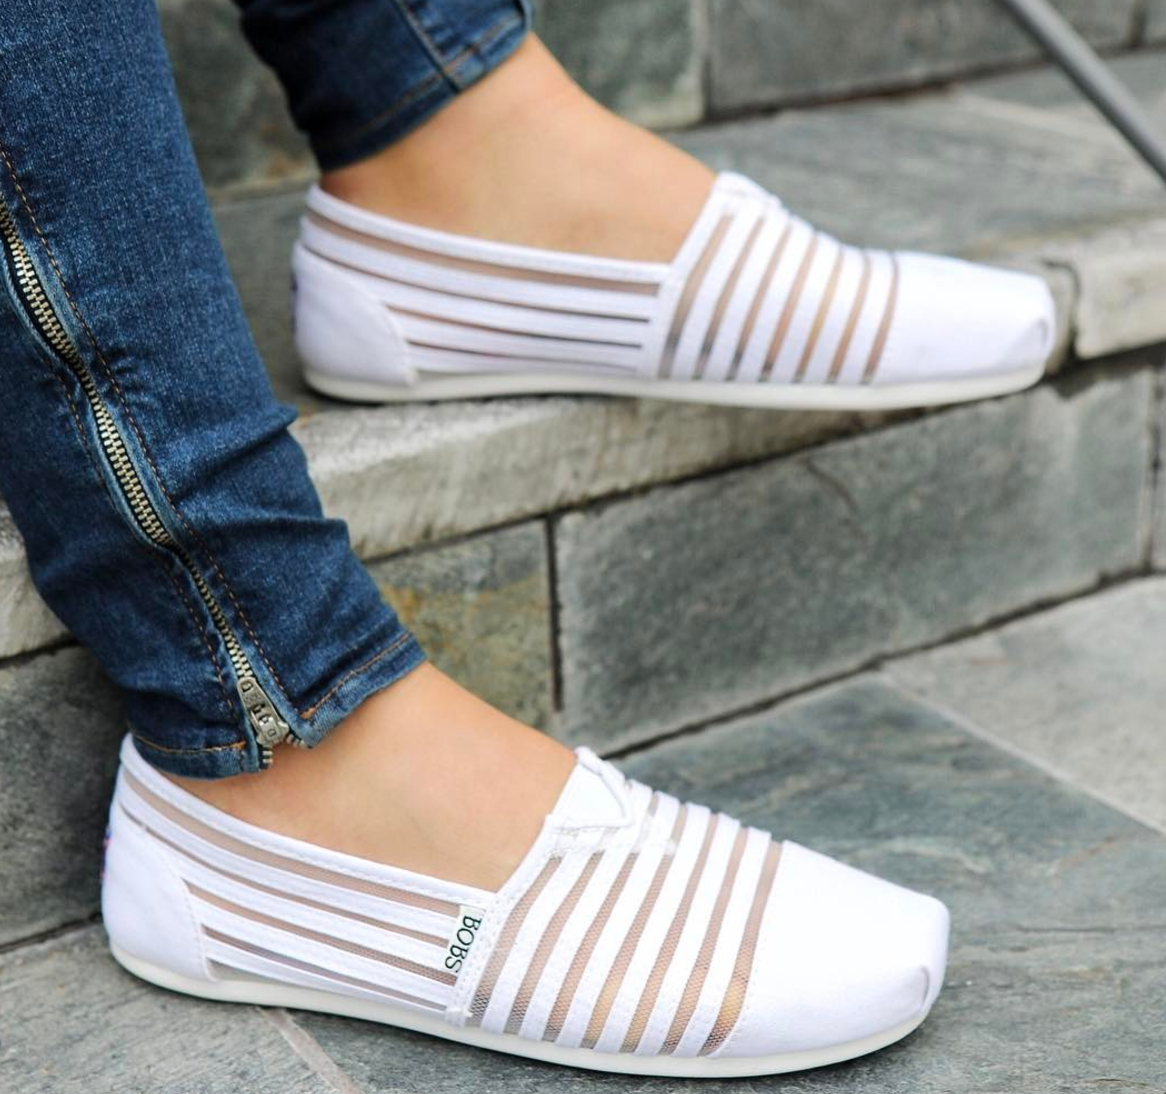 e5bd6550b91 The Adorbs shoe is totally adorbs. Find this Pin and more on BOBS from  SKECHERS ...